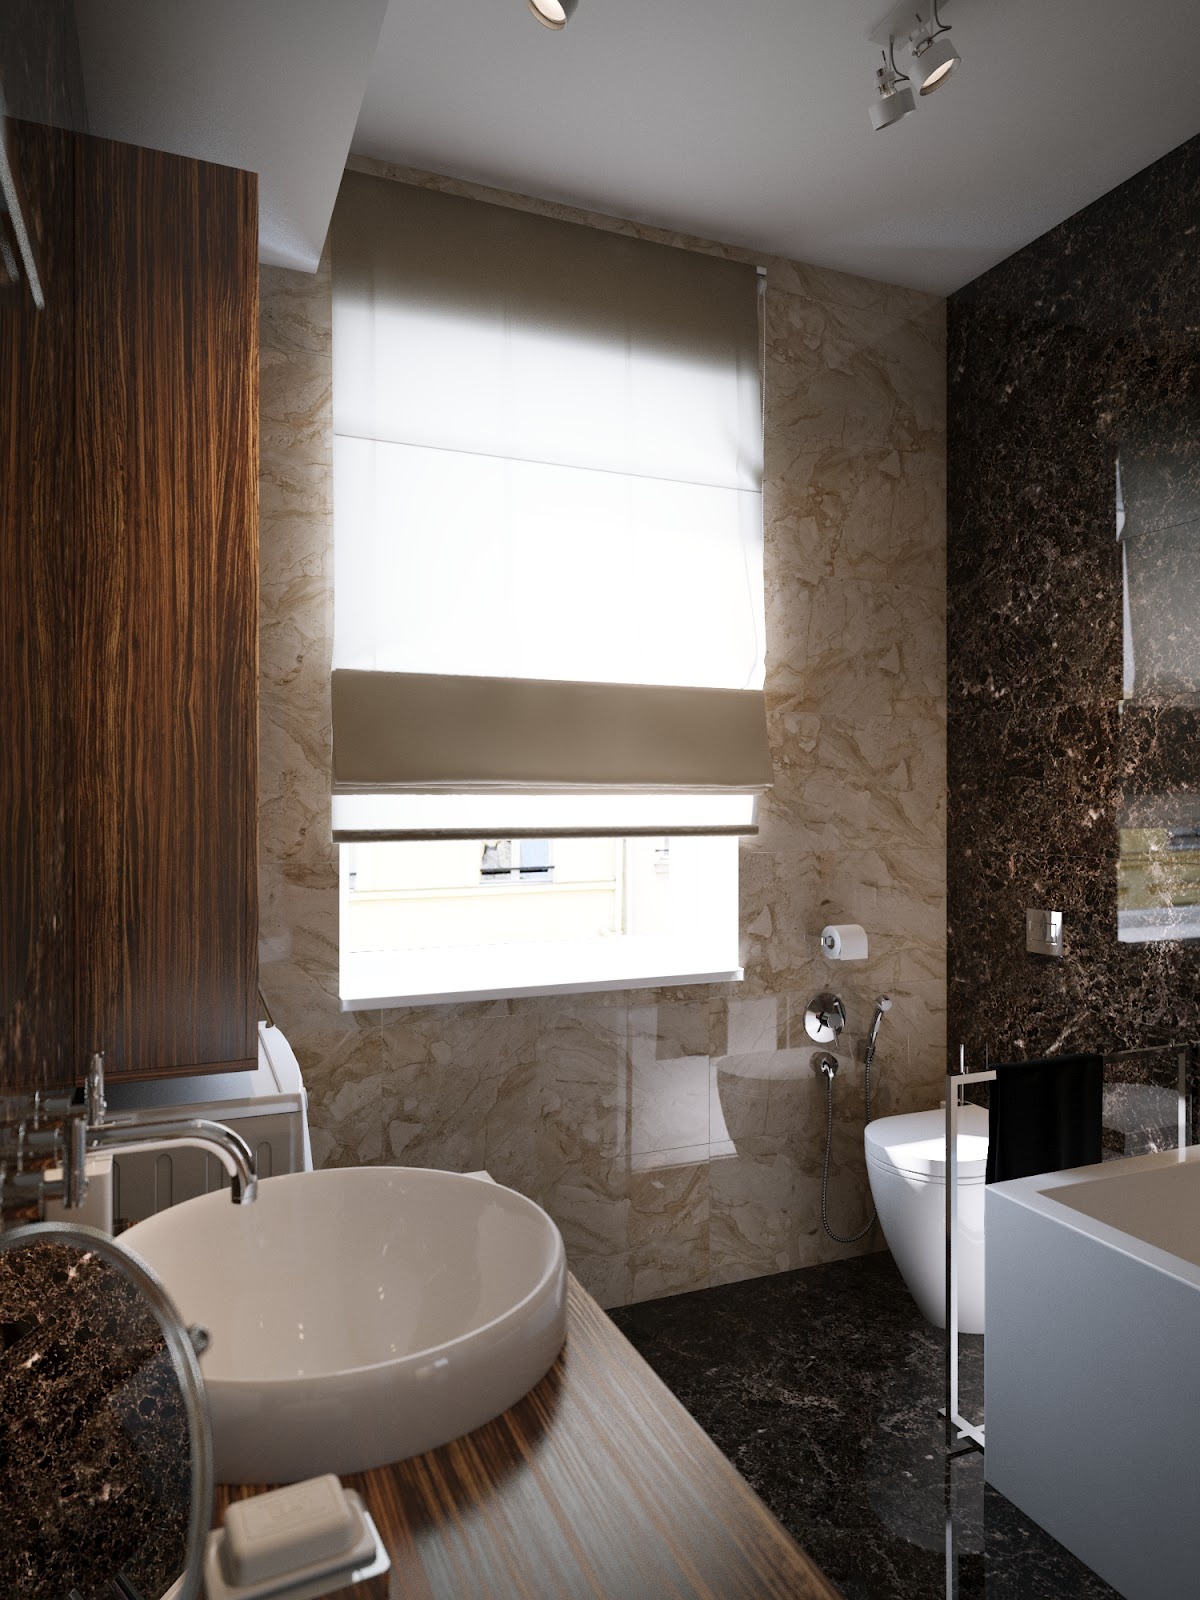 25 Modern Bathroom Design Ideas - Decoration Love